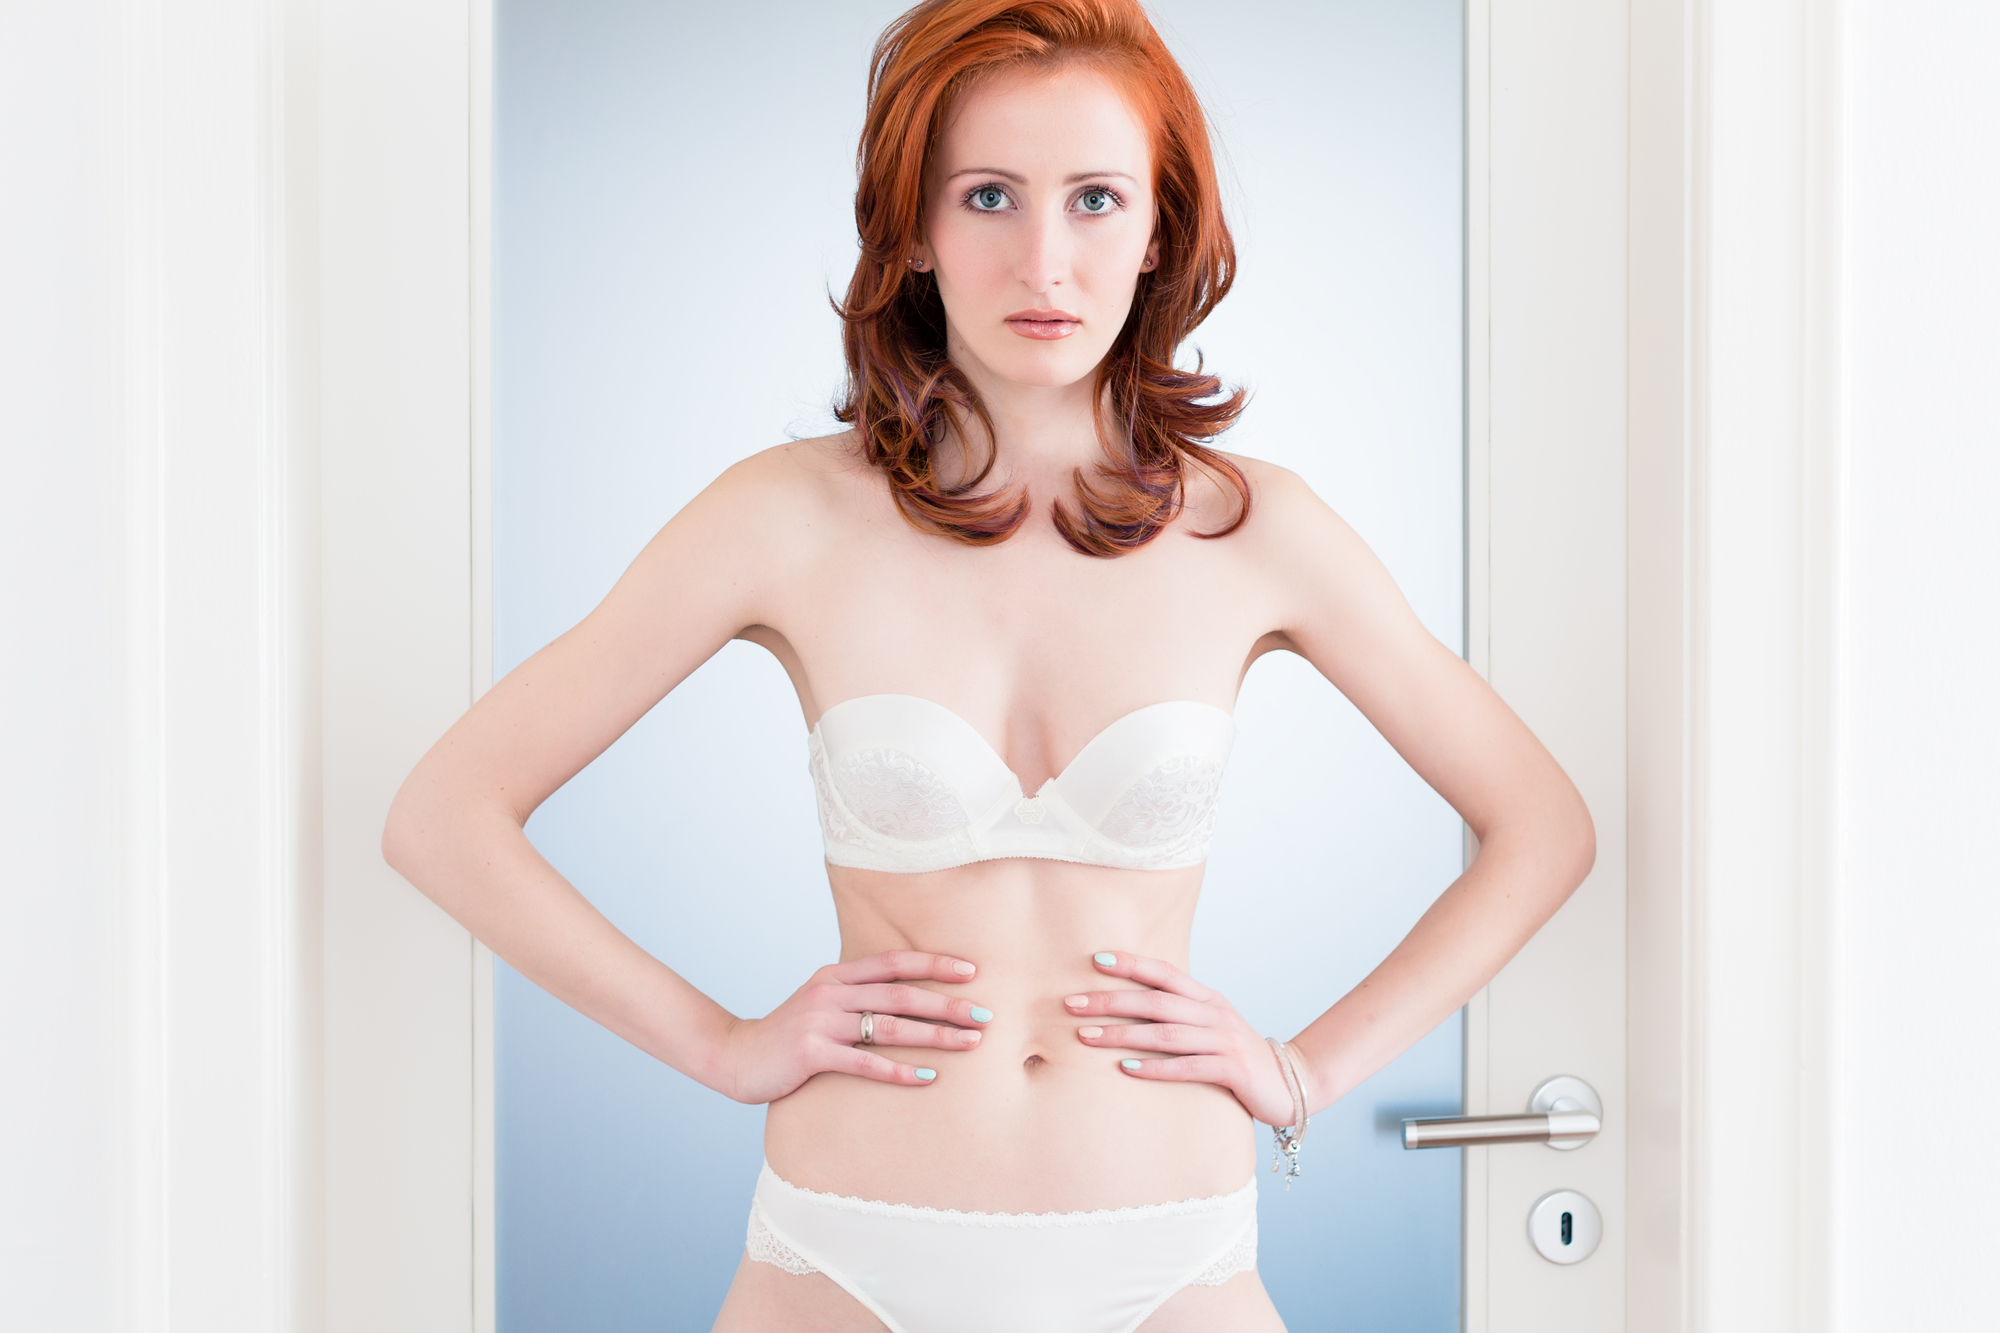 Bride in bridal lingerie standing in home